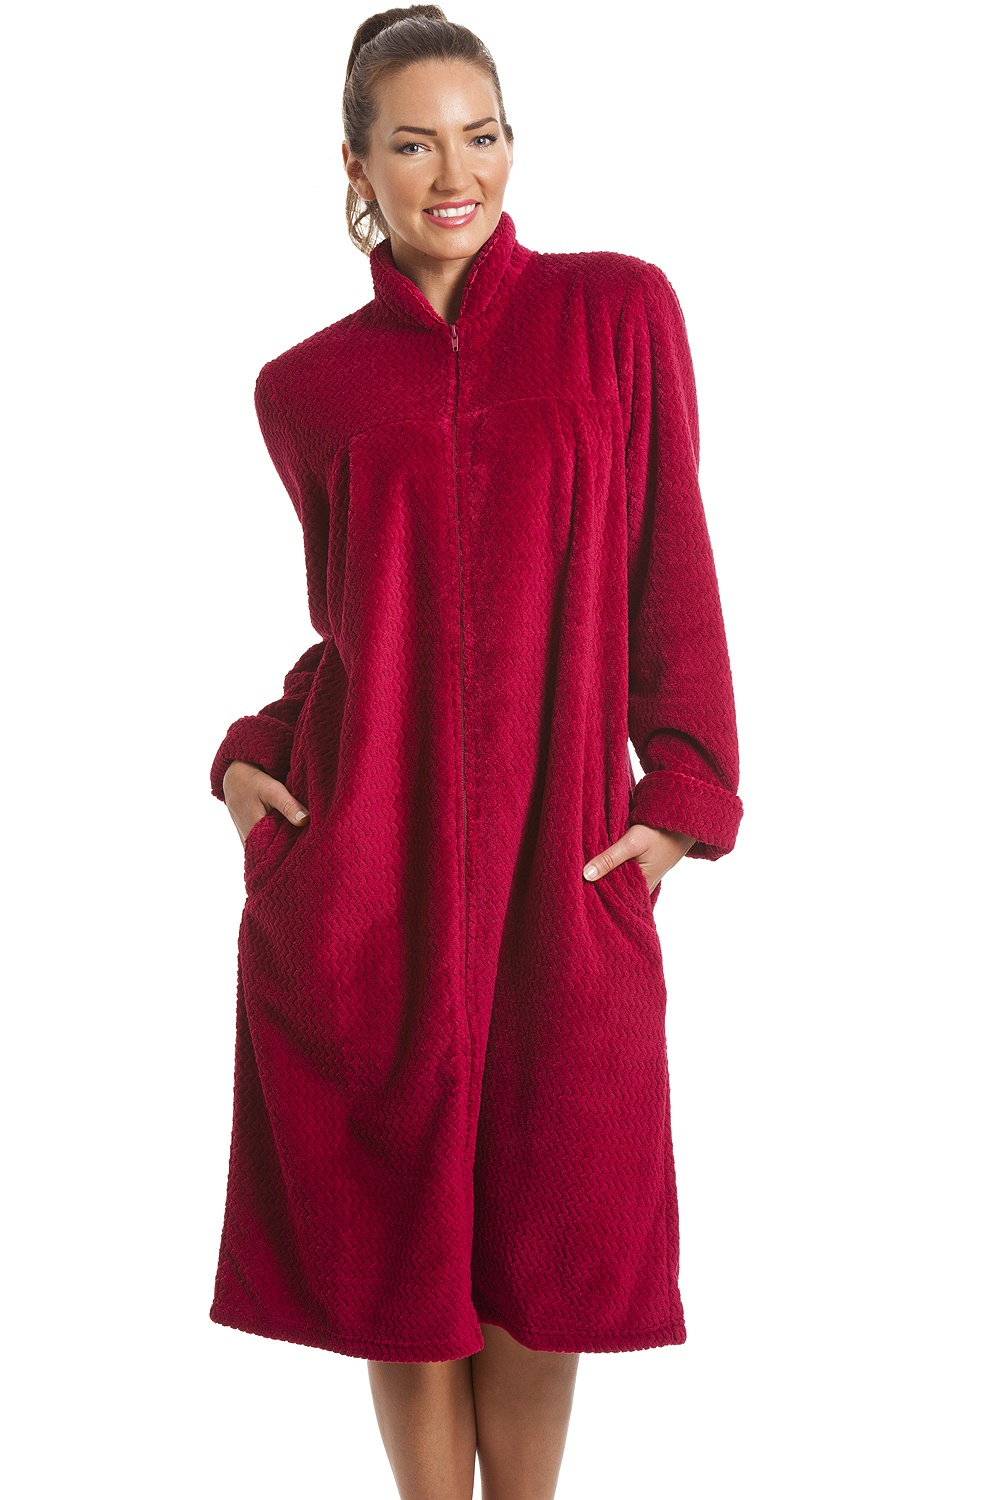 Soft fleece berry zip front house coat - Robe de chambre fermeture eclair femme ...